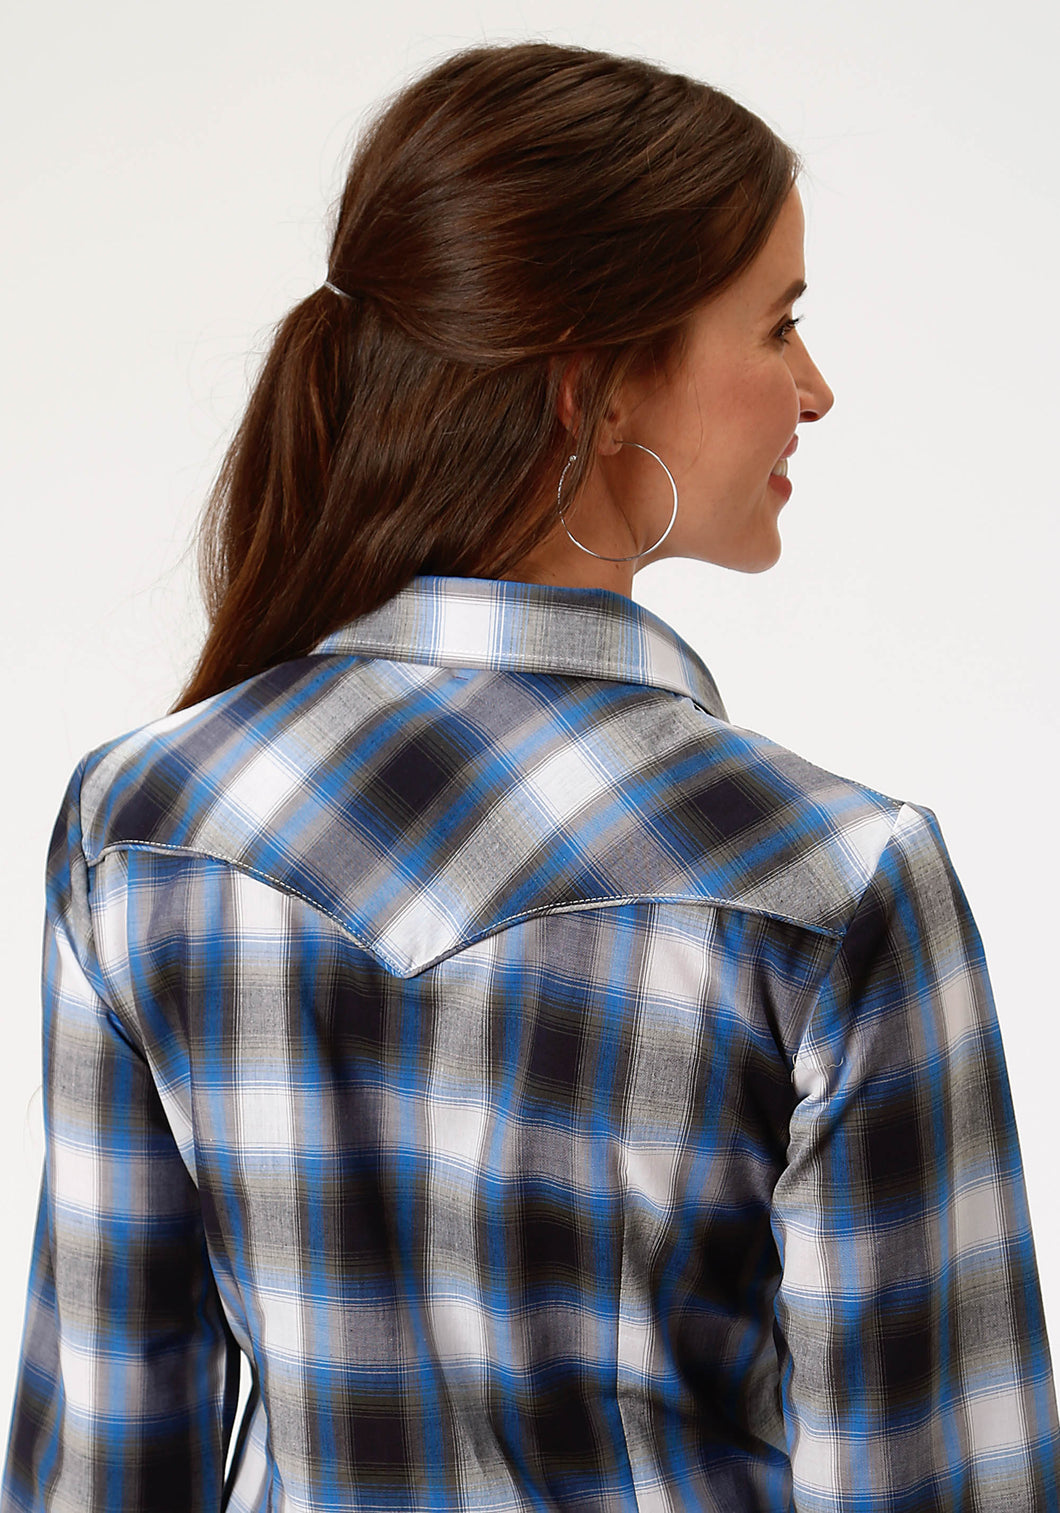 Karman Special Styles Polyc Womens Long Sleeve 0022 Sky Blue Navy Olive Plaid